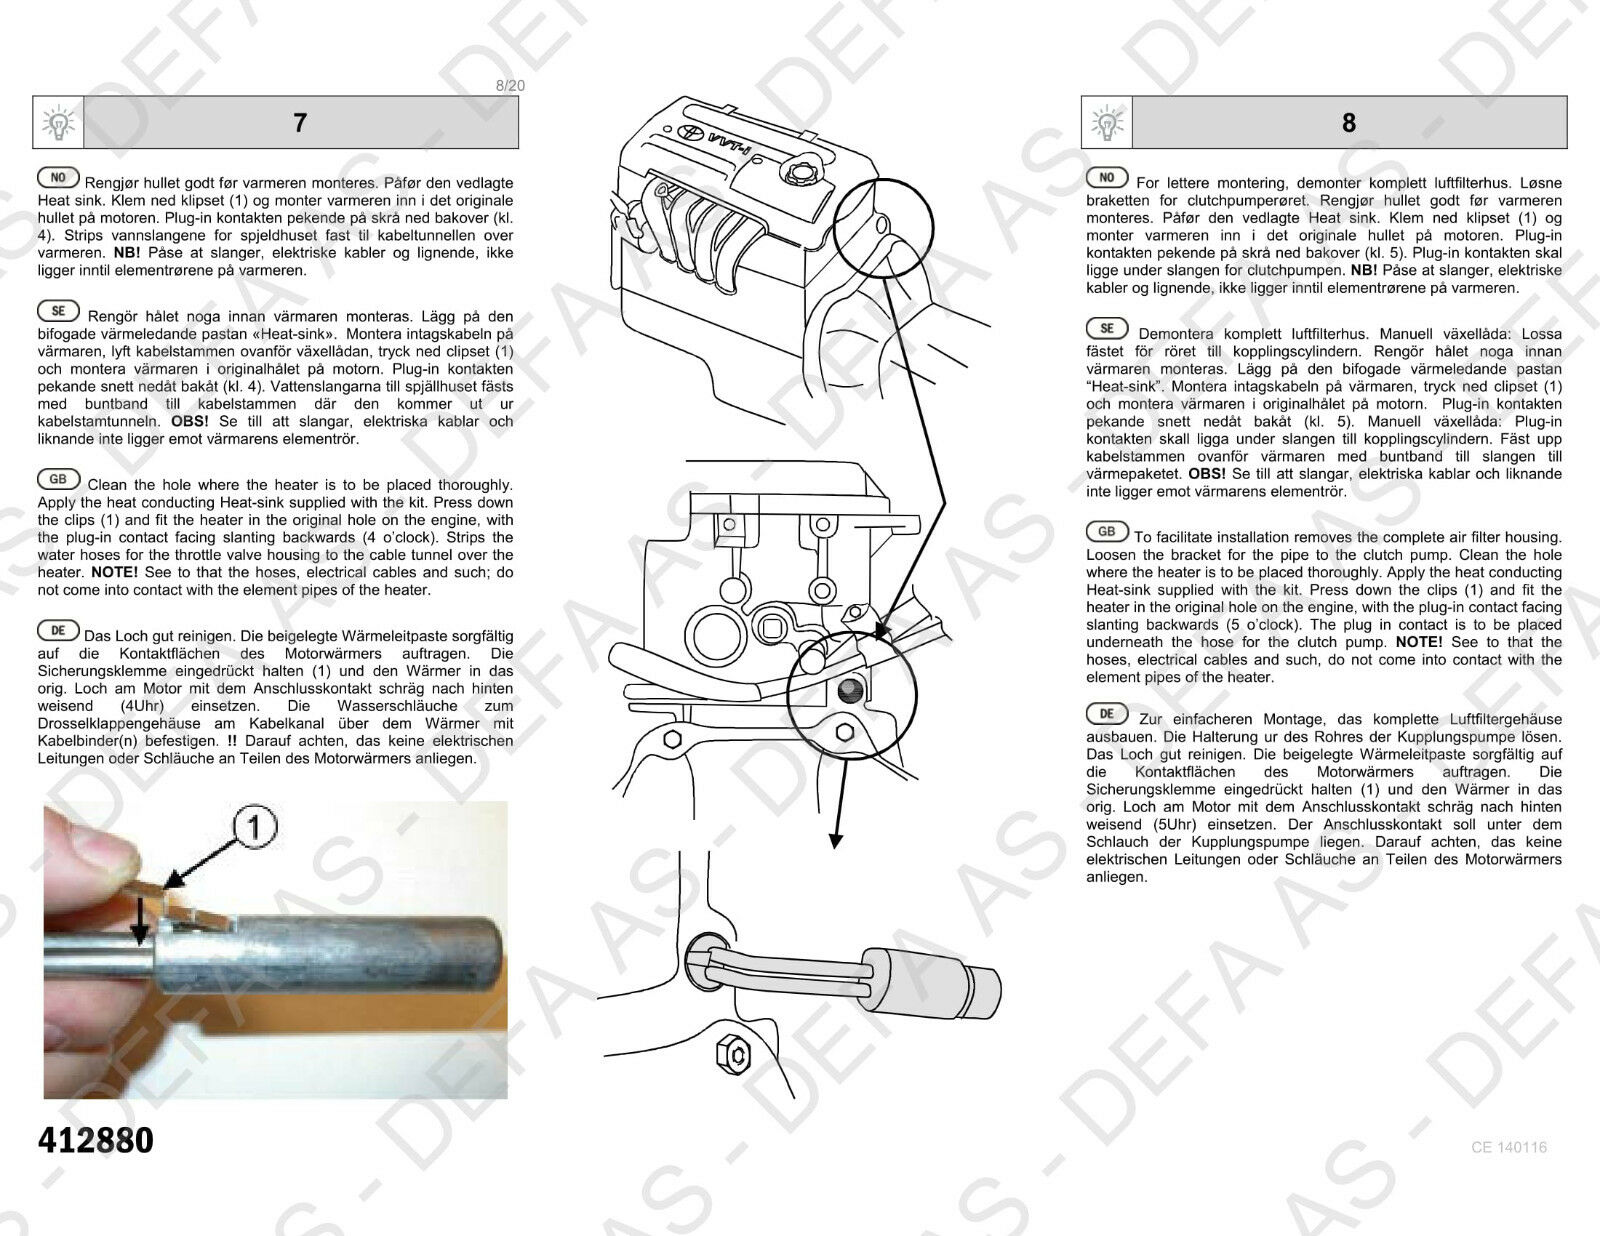 Heater DEFA RX Toyota for MANY LEXUS 412880 Hyundai IS Engine OTHER Element and j54ARL